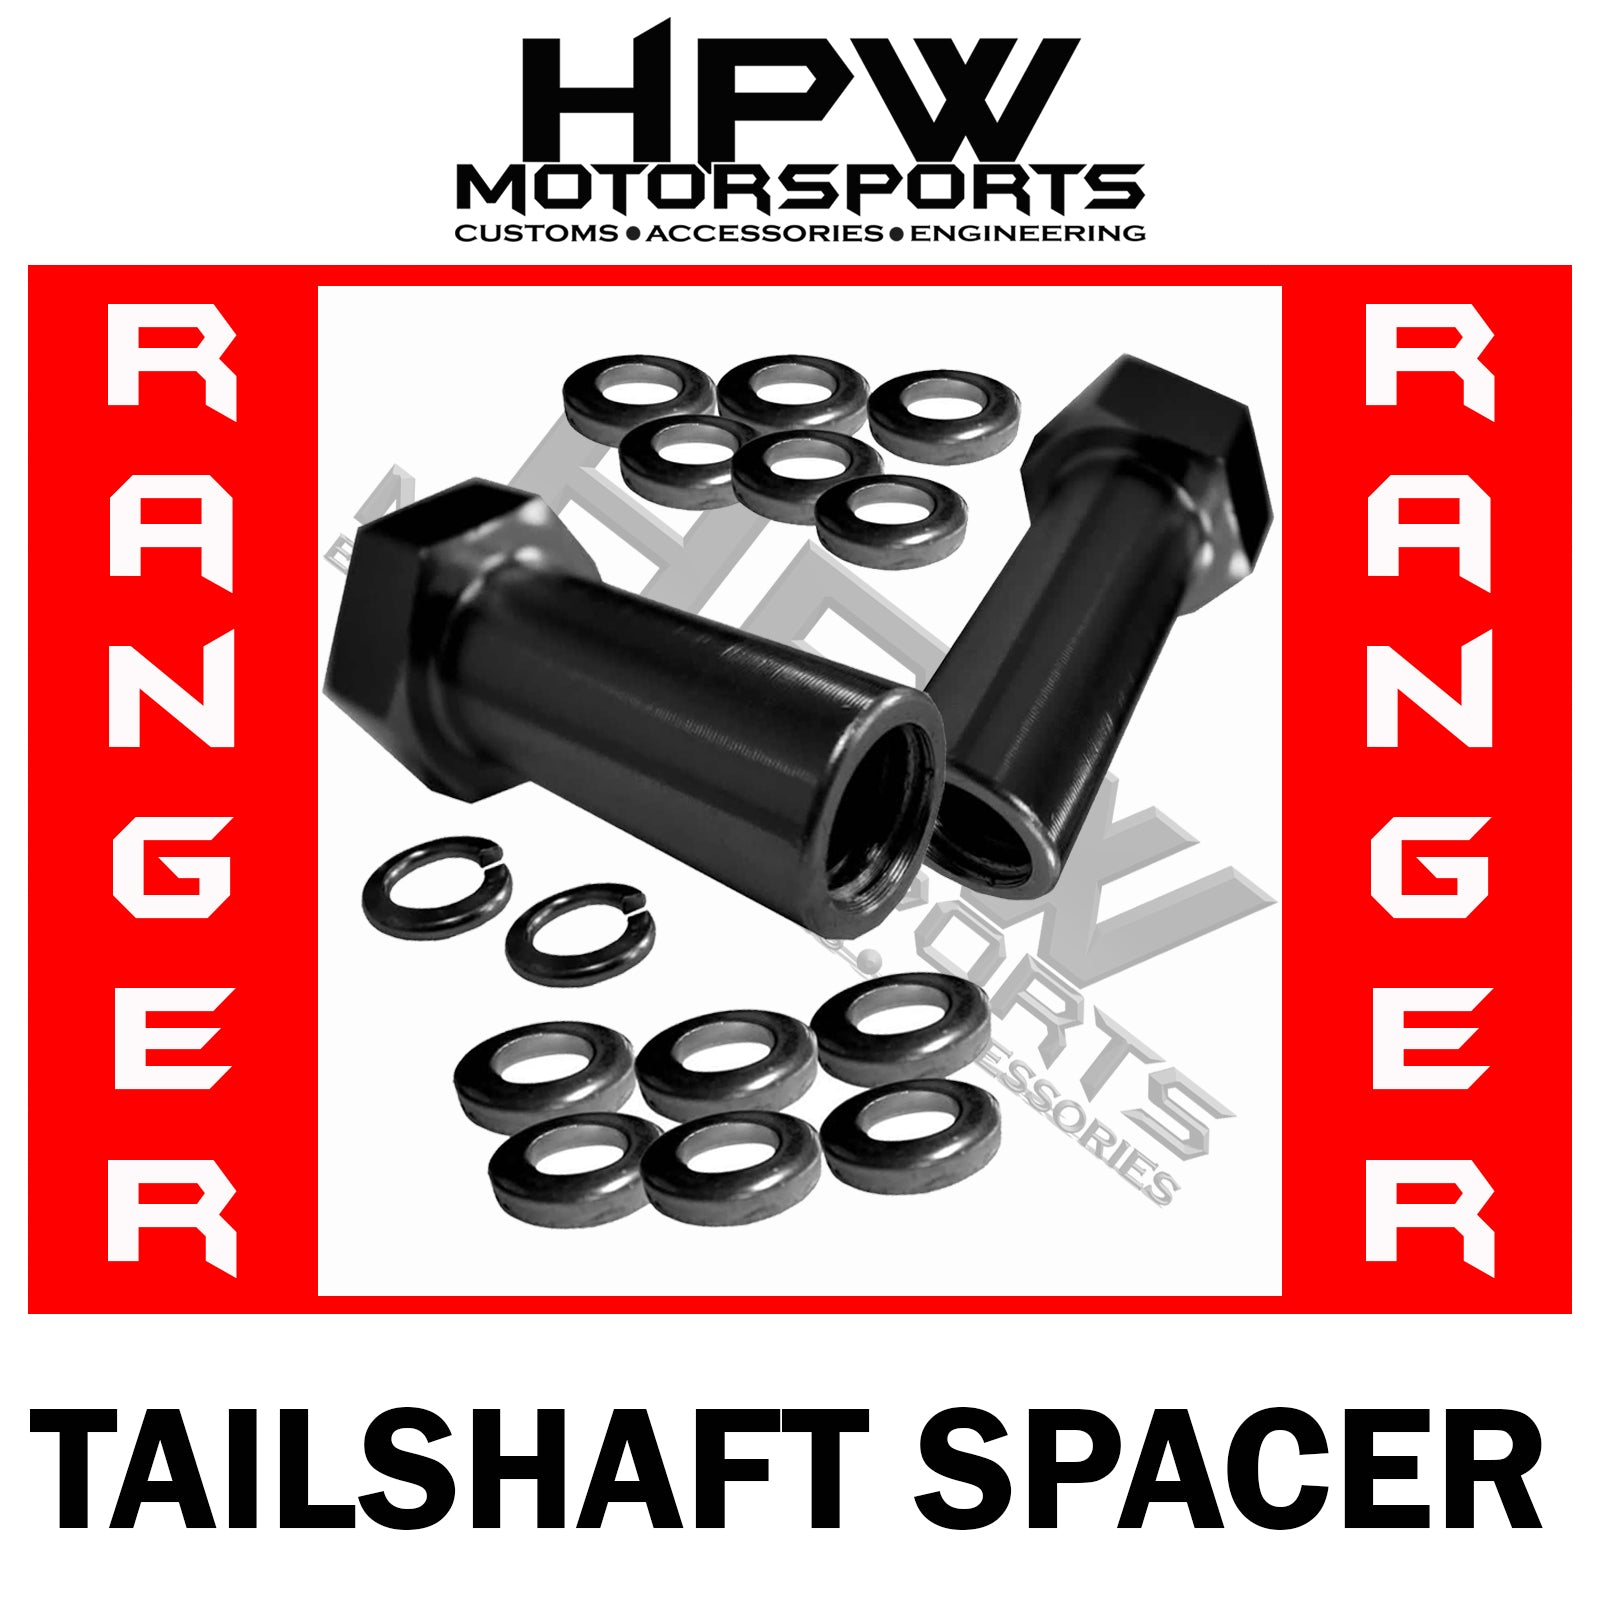 Copy of Tailshaft / Center bearing spacer KIT for Ford Ranger PX3